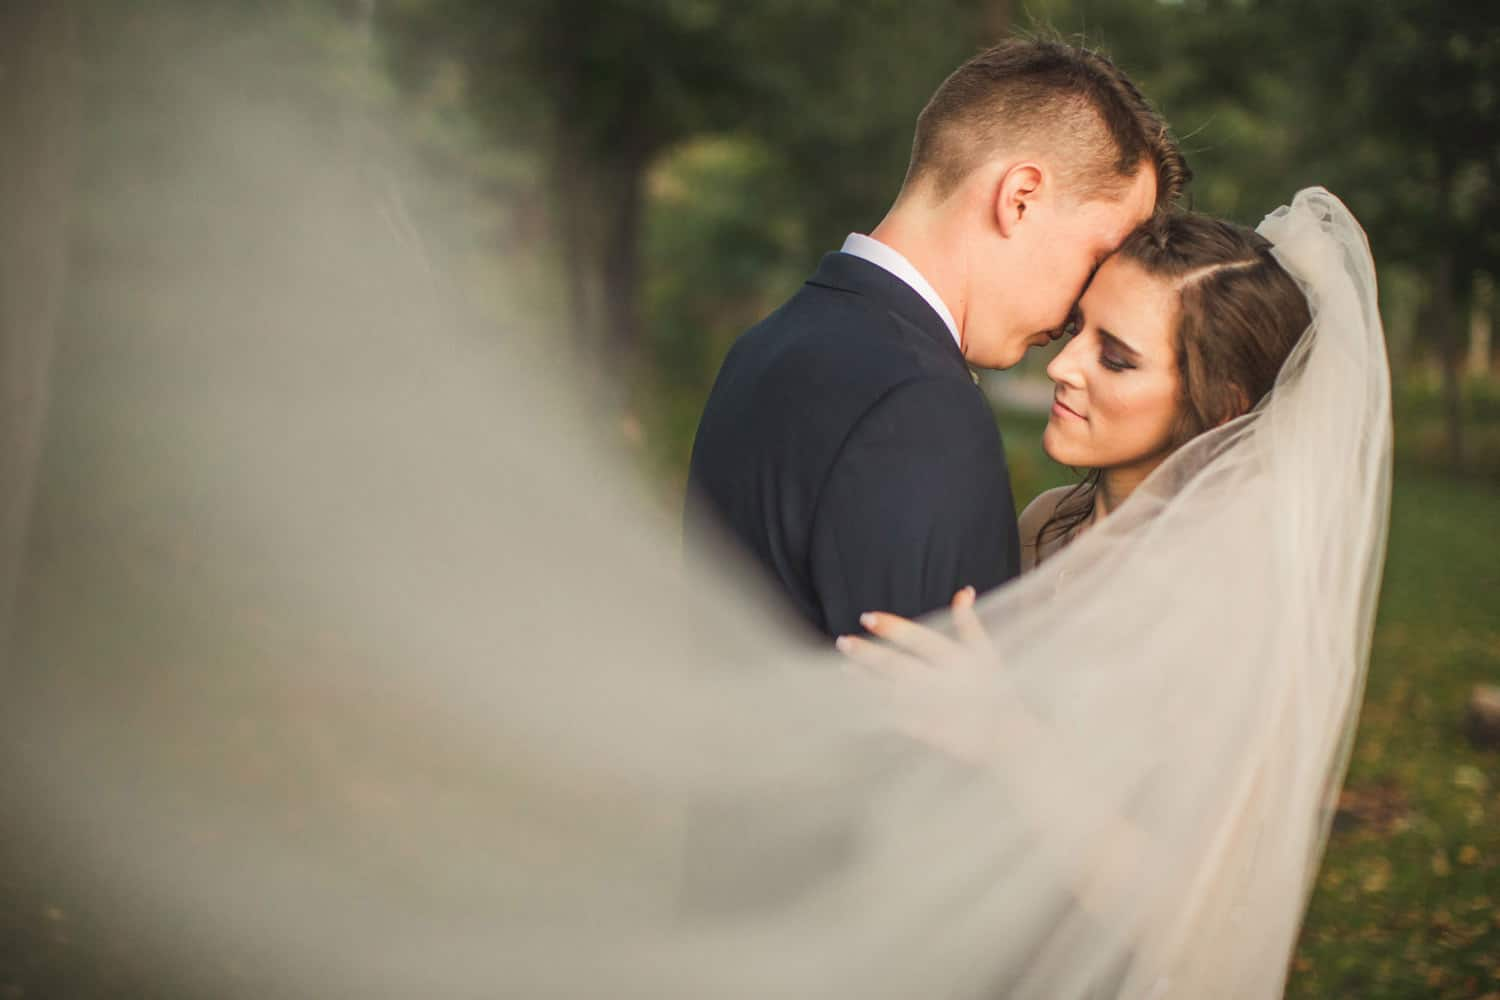 couple intimate with veil